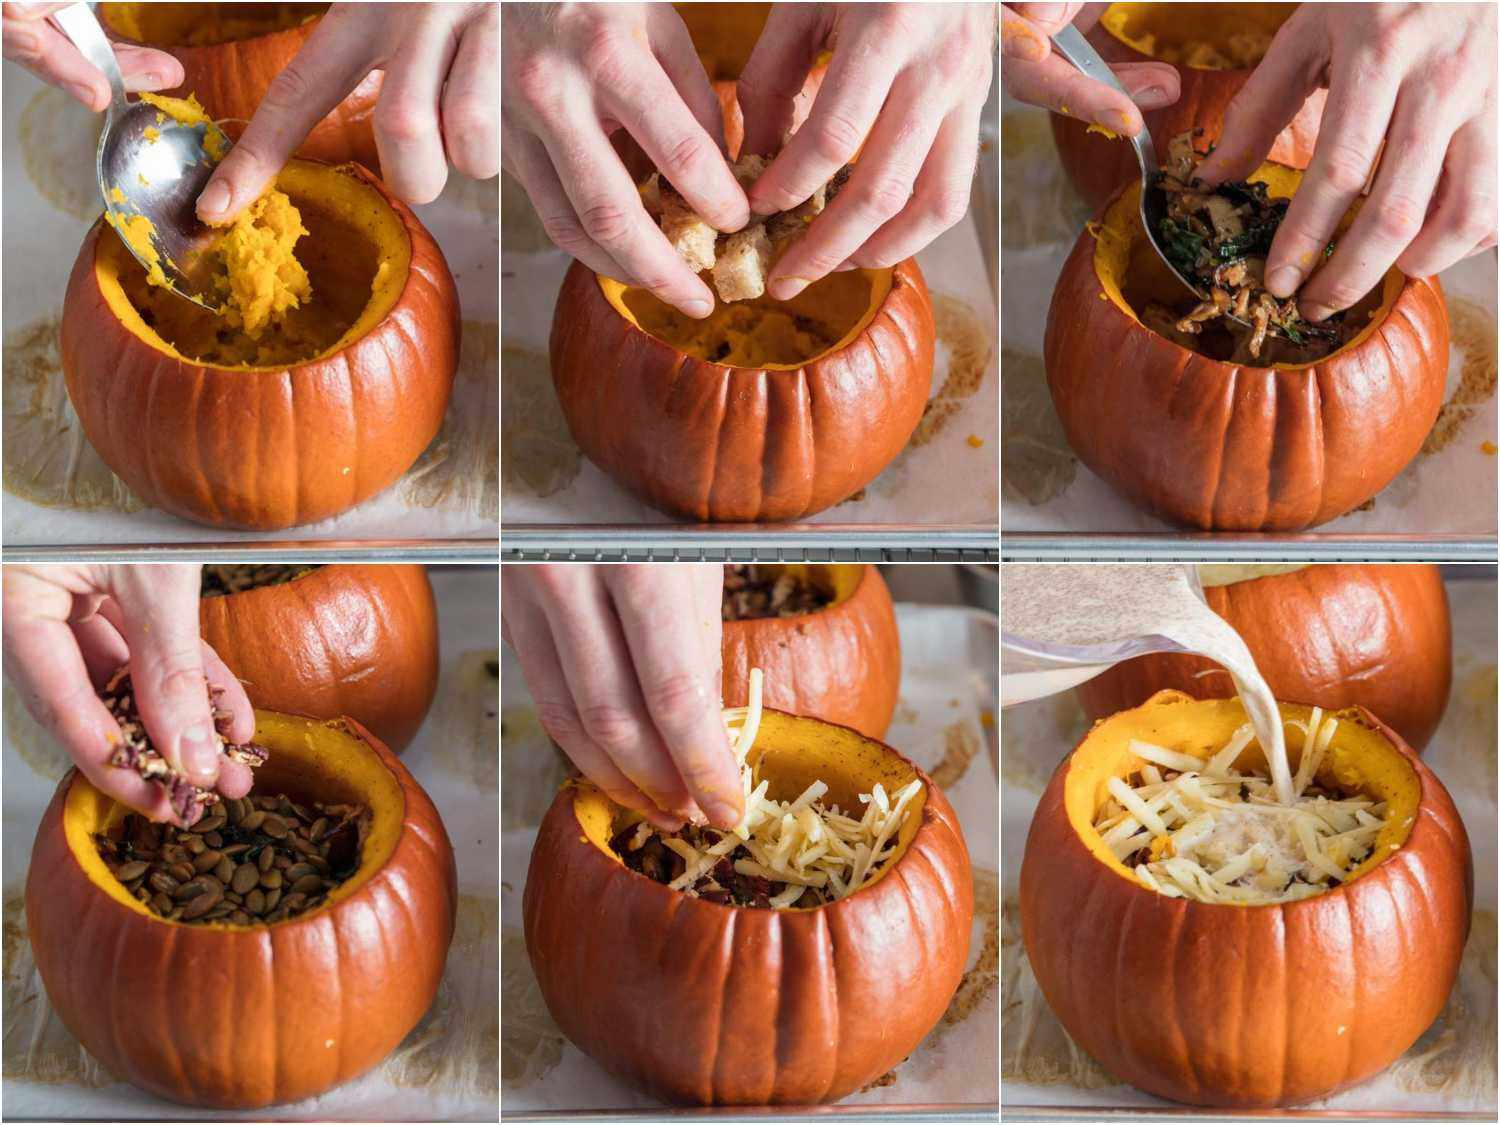 Collage of photos showing the sequence of stuffing pumpkins.